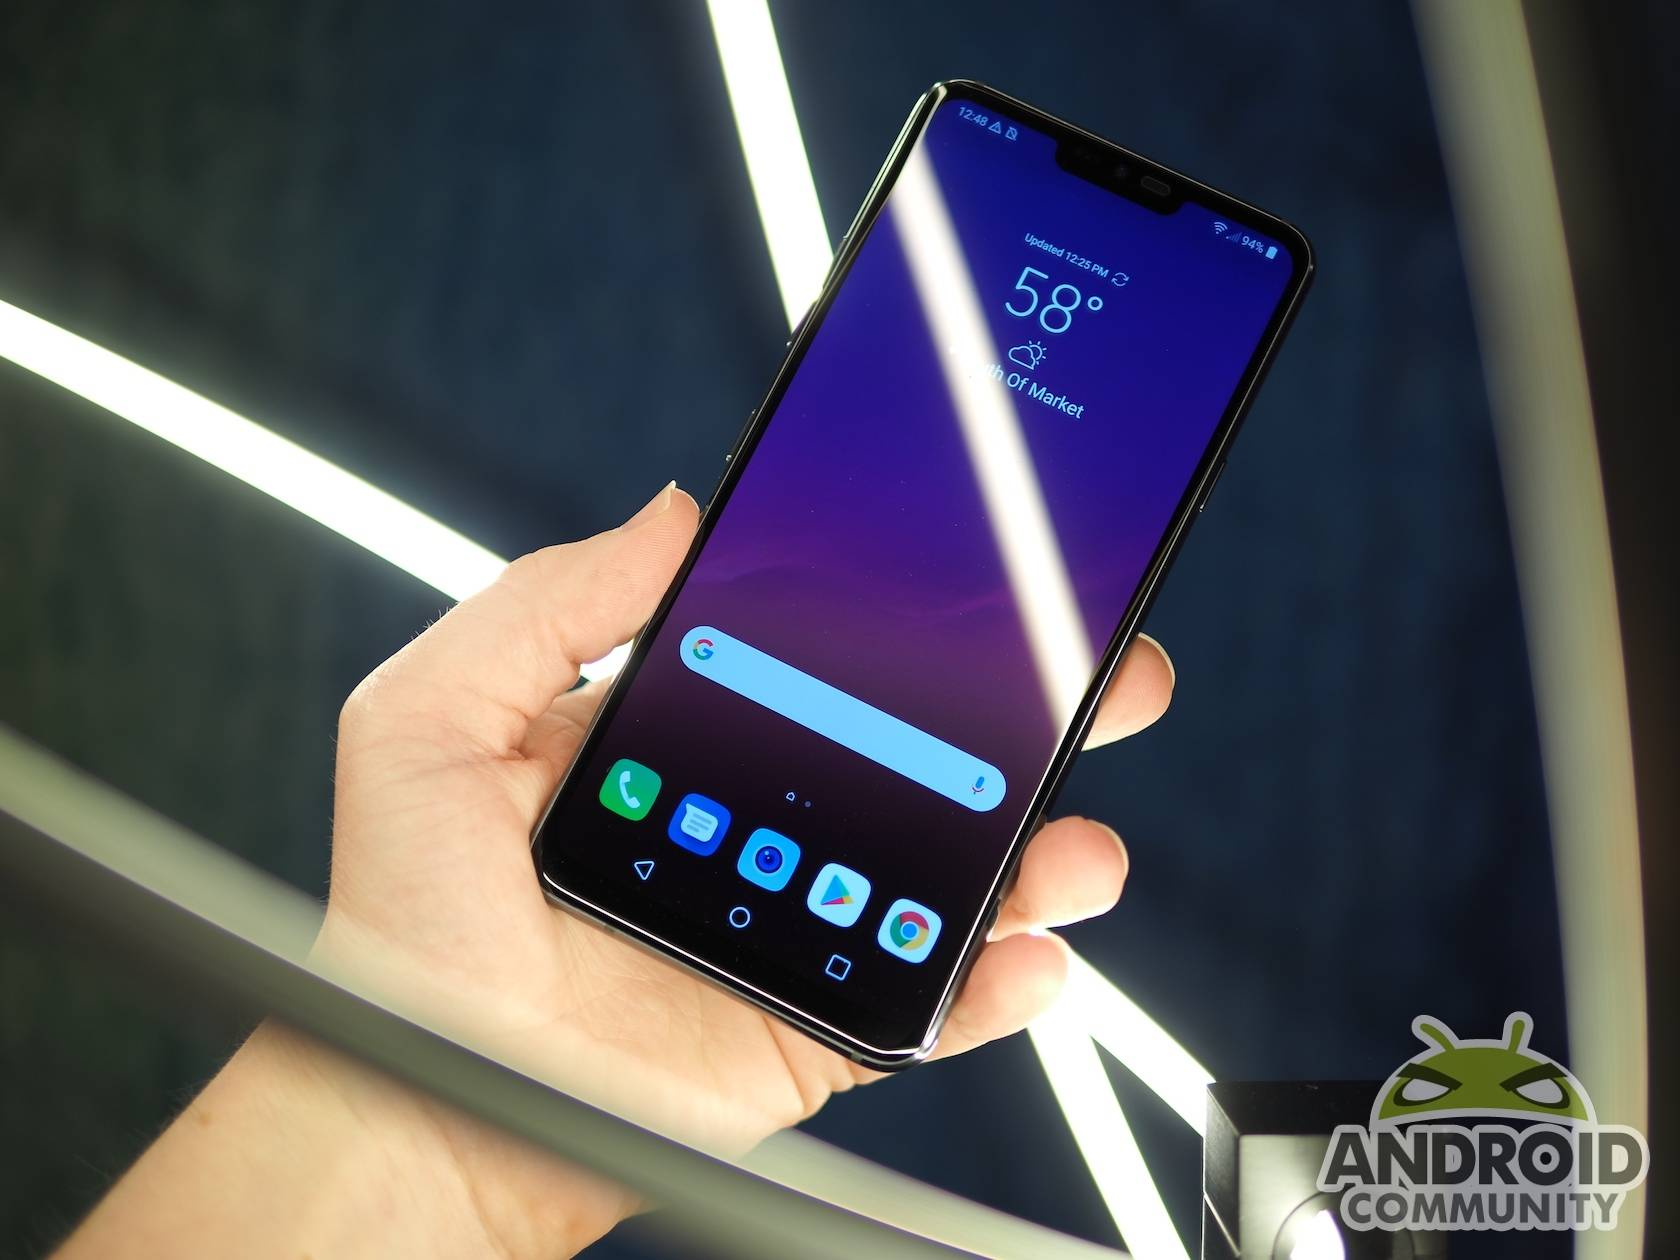 LG G7 ThinQ hands-on - Android Community